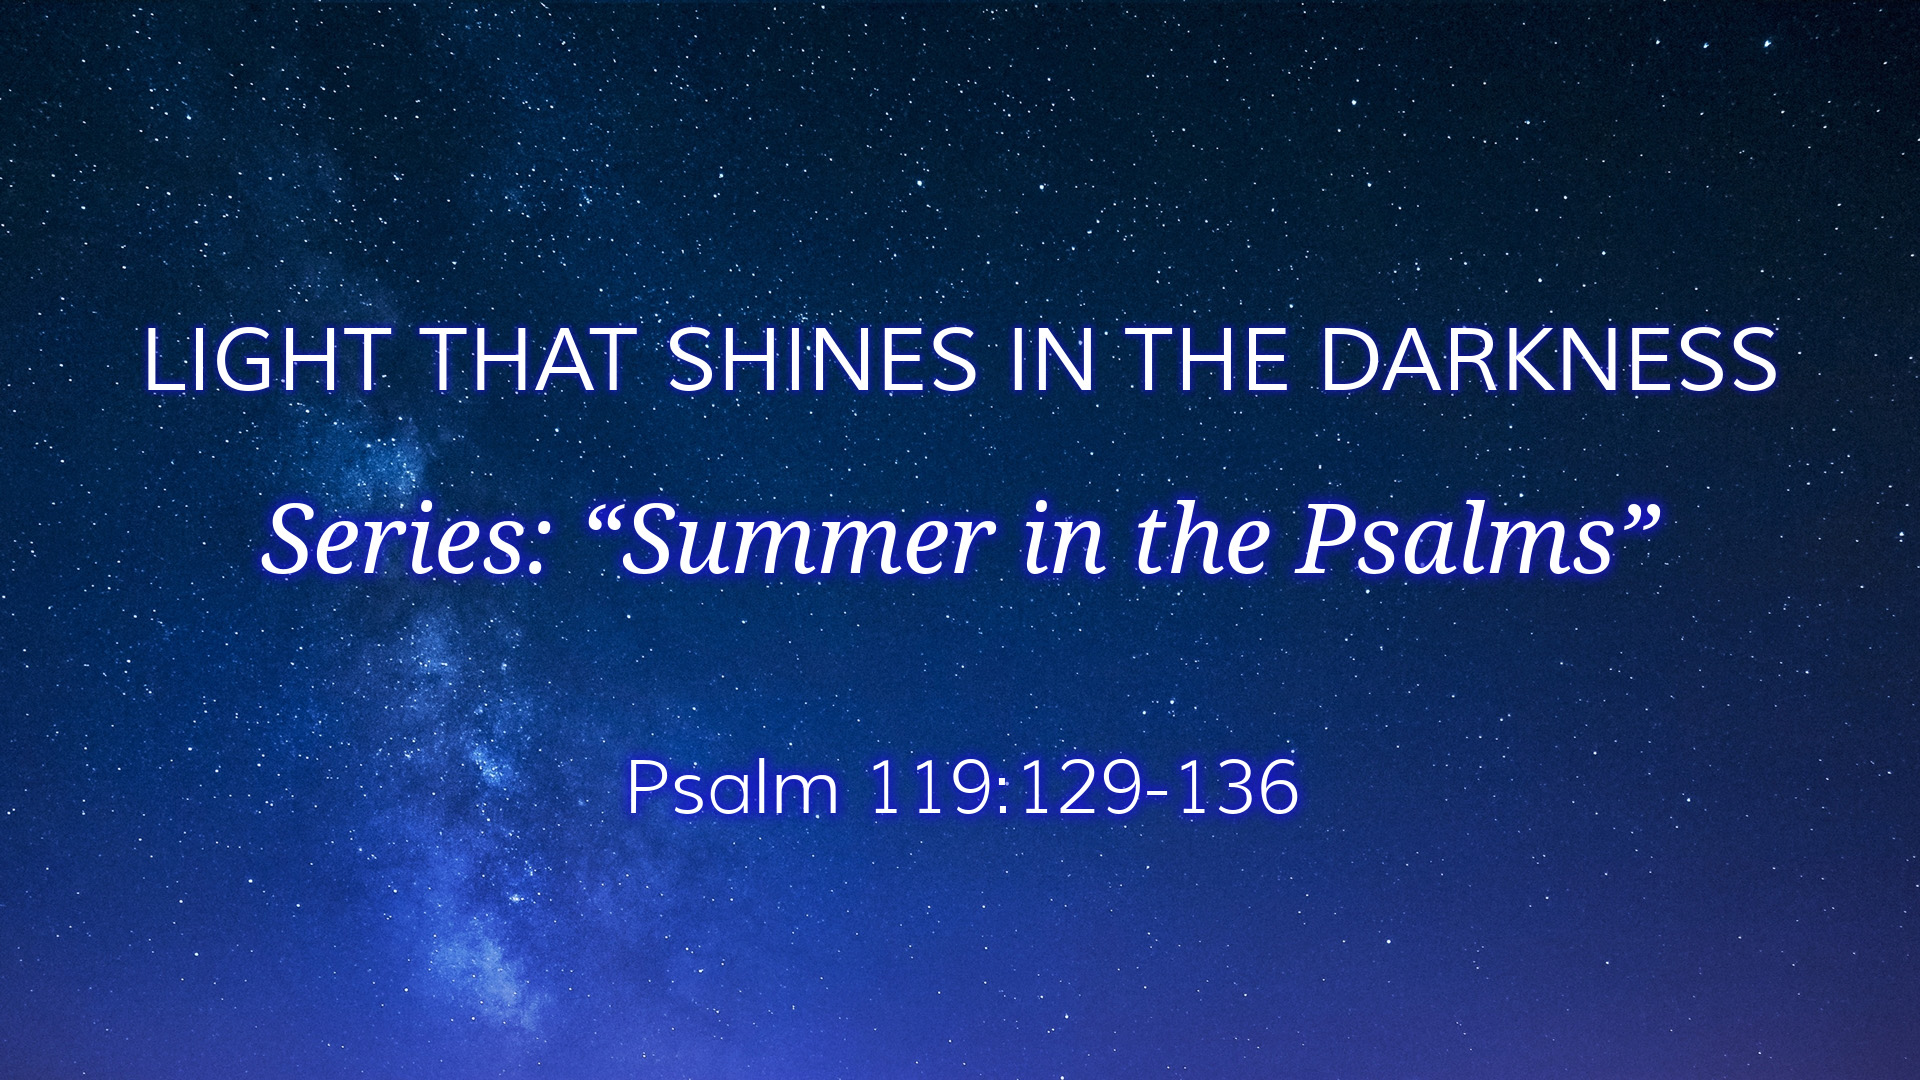 Image for the sermon Light that Shines in the Darkness